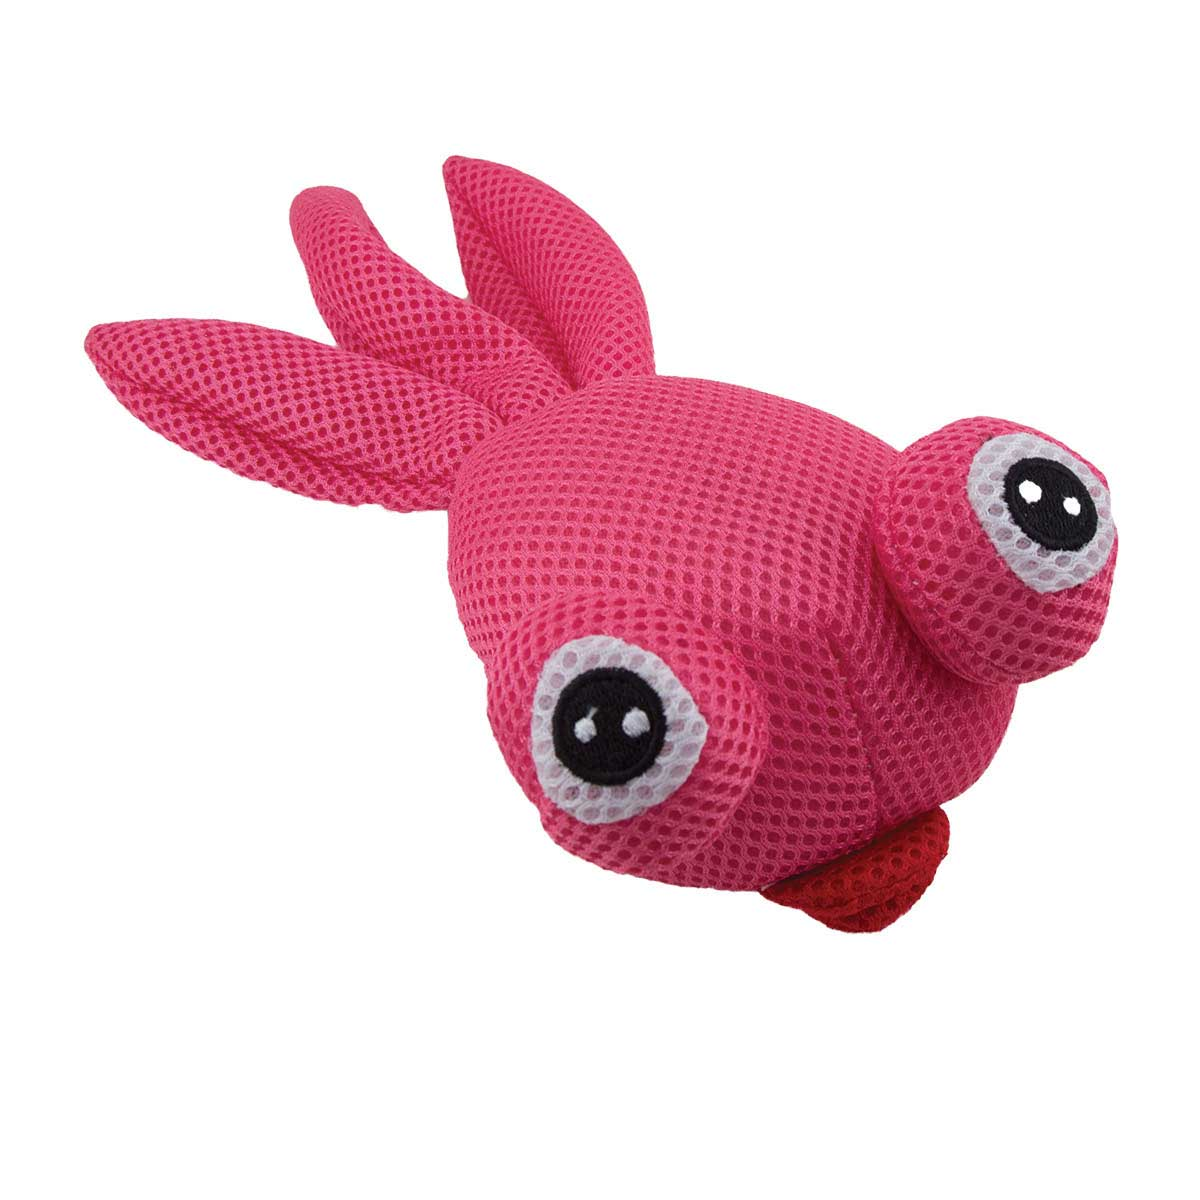 Dawgeee Toy Pink Plush Goldfish Dog Toys - 11 inches